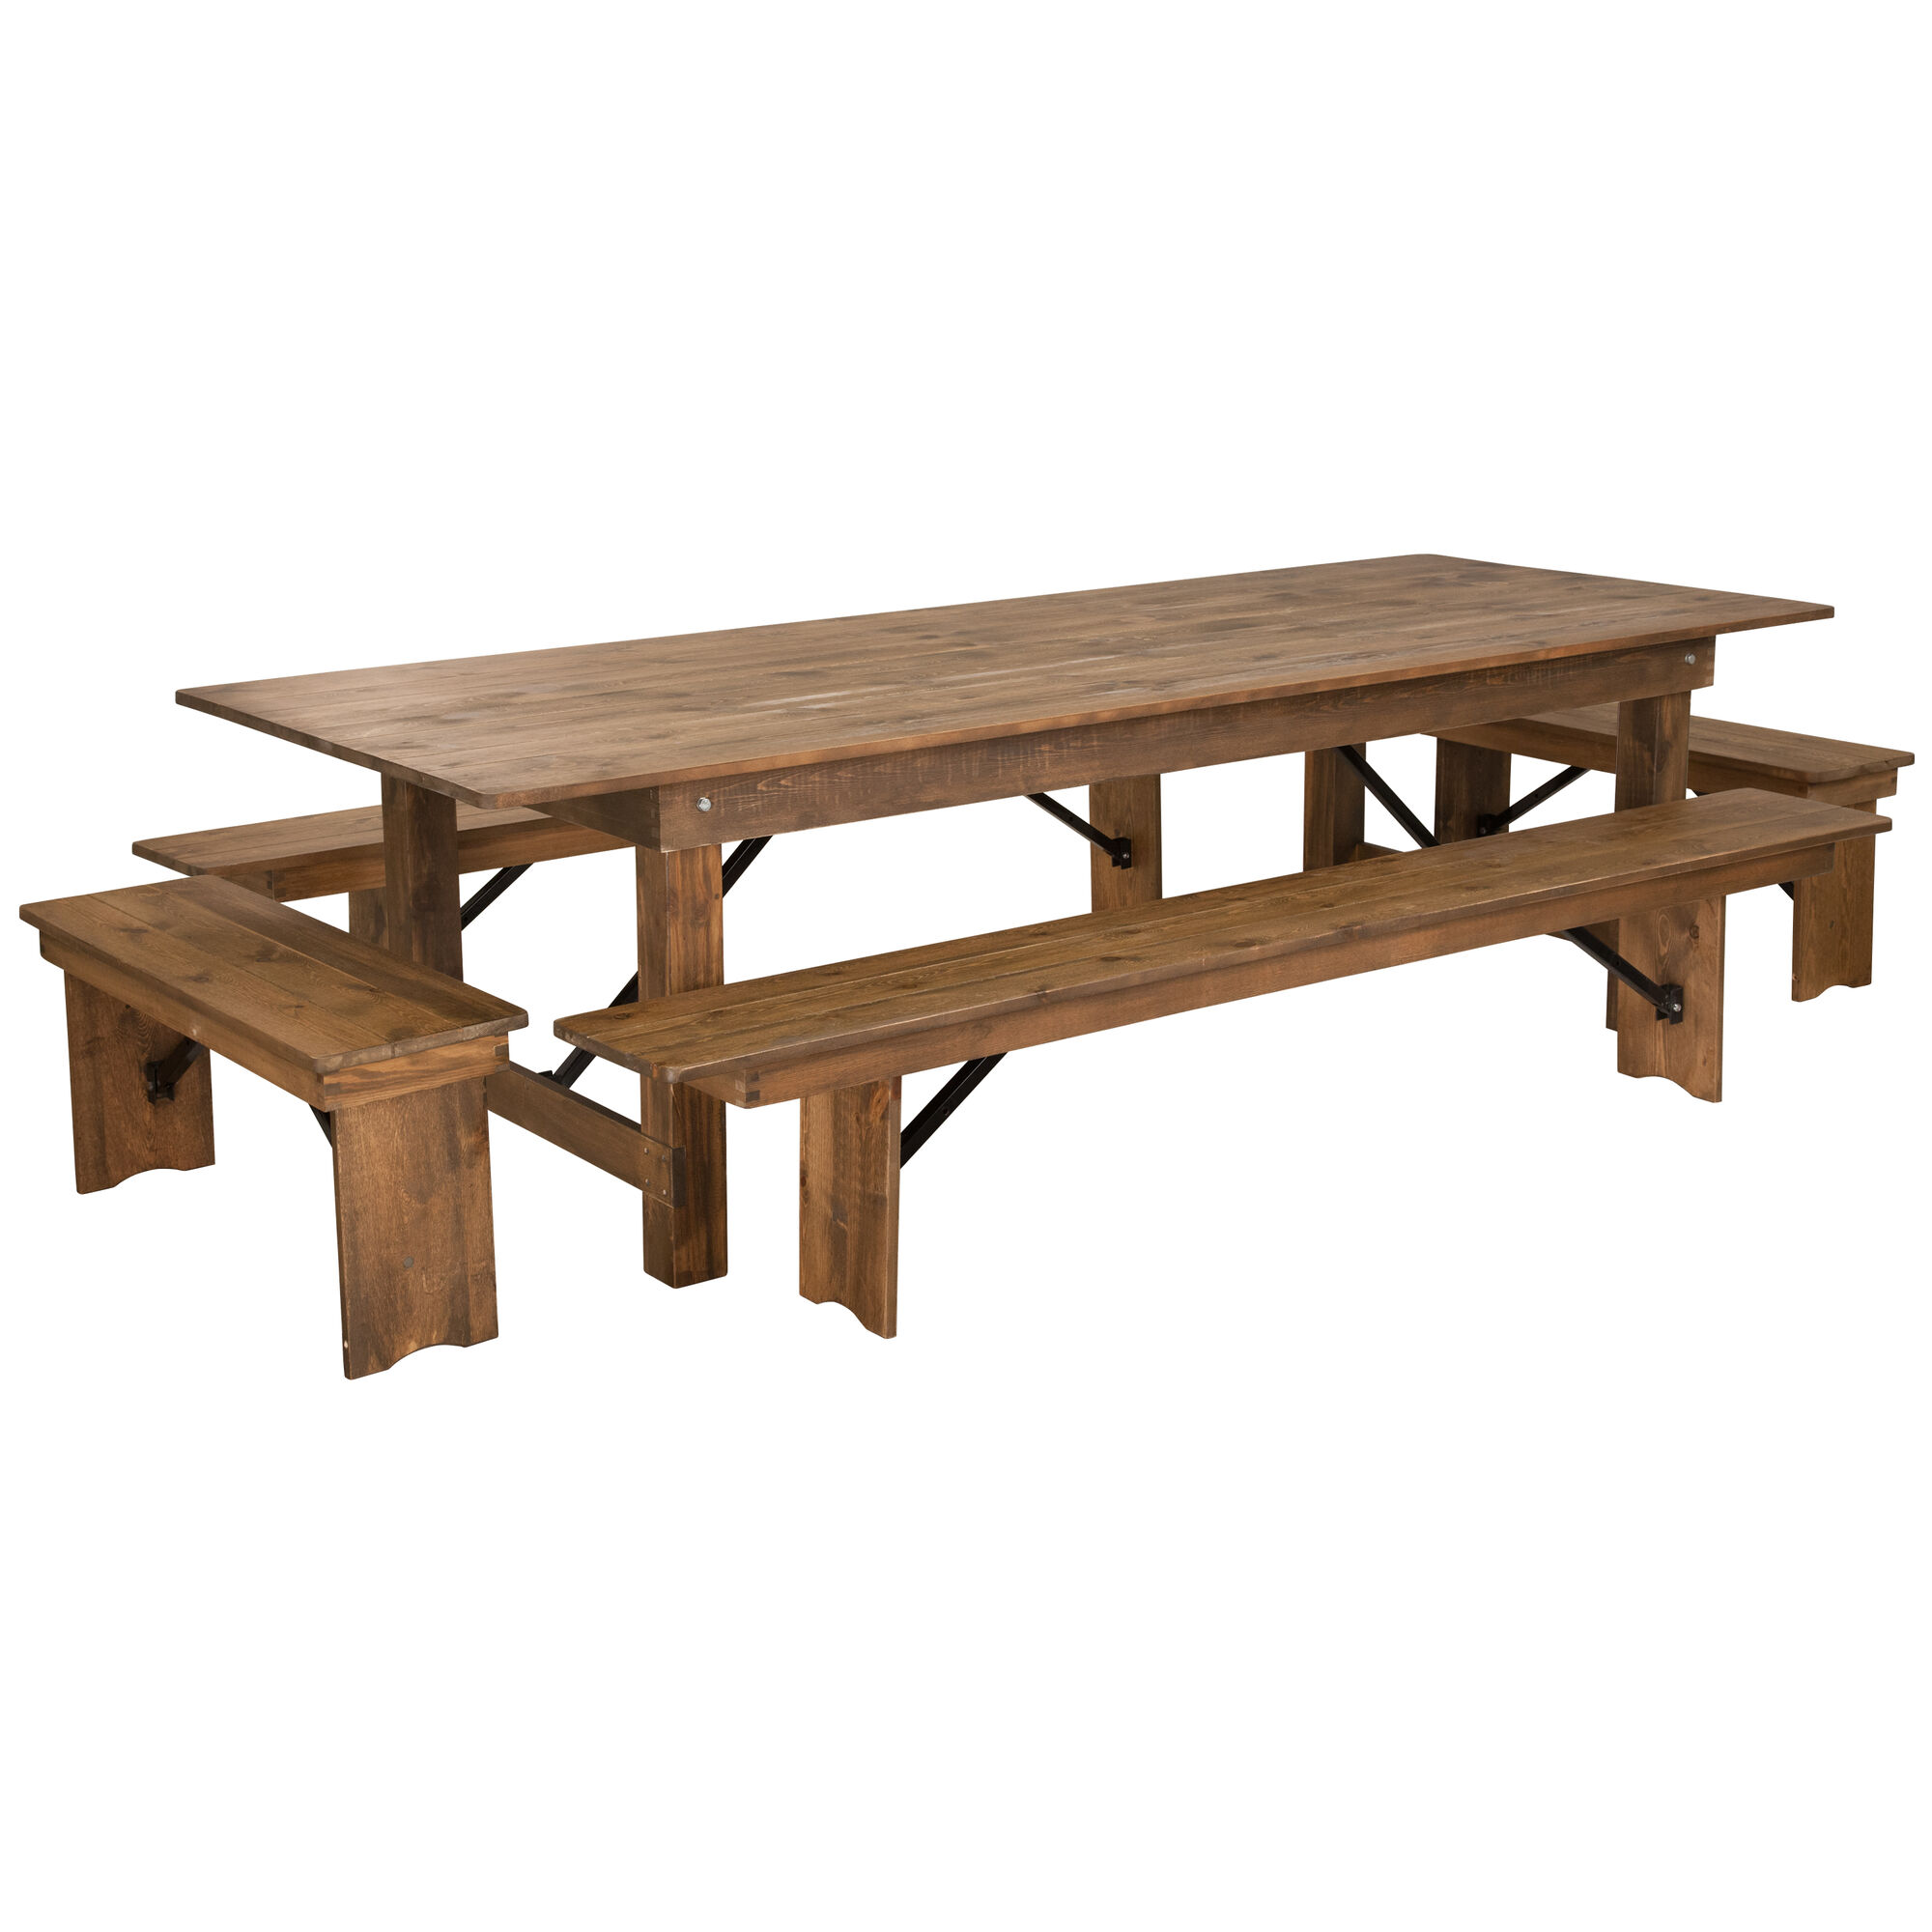 Prime Hercules Series 9 X 40 Antique Rustic Folding Farm Table And Four Bench Set Ibusinesslaw Wood Chair Design Ideas Ibusinesslaworg